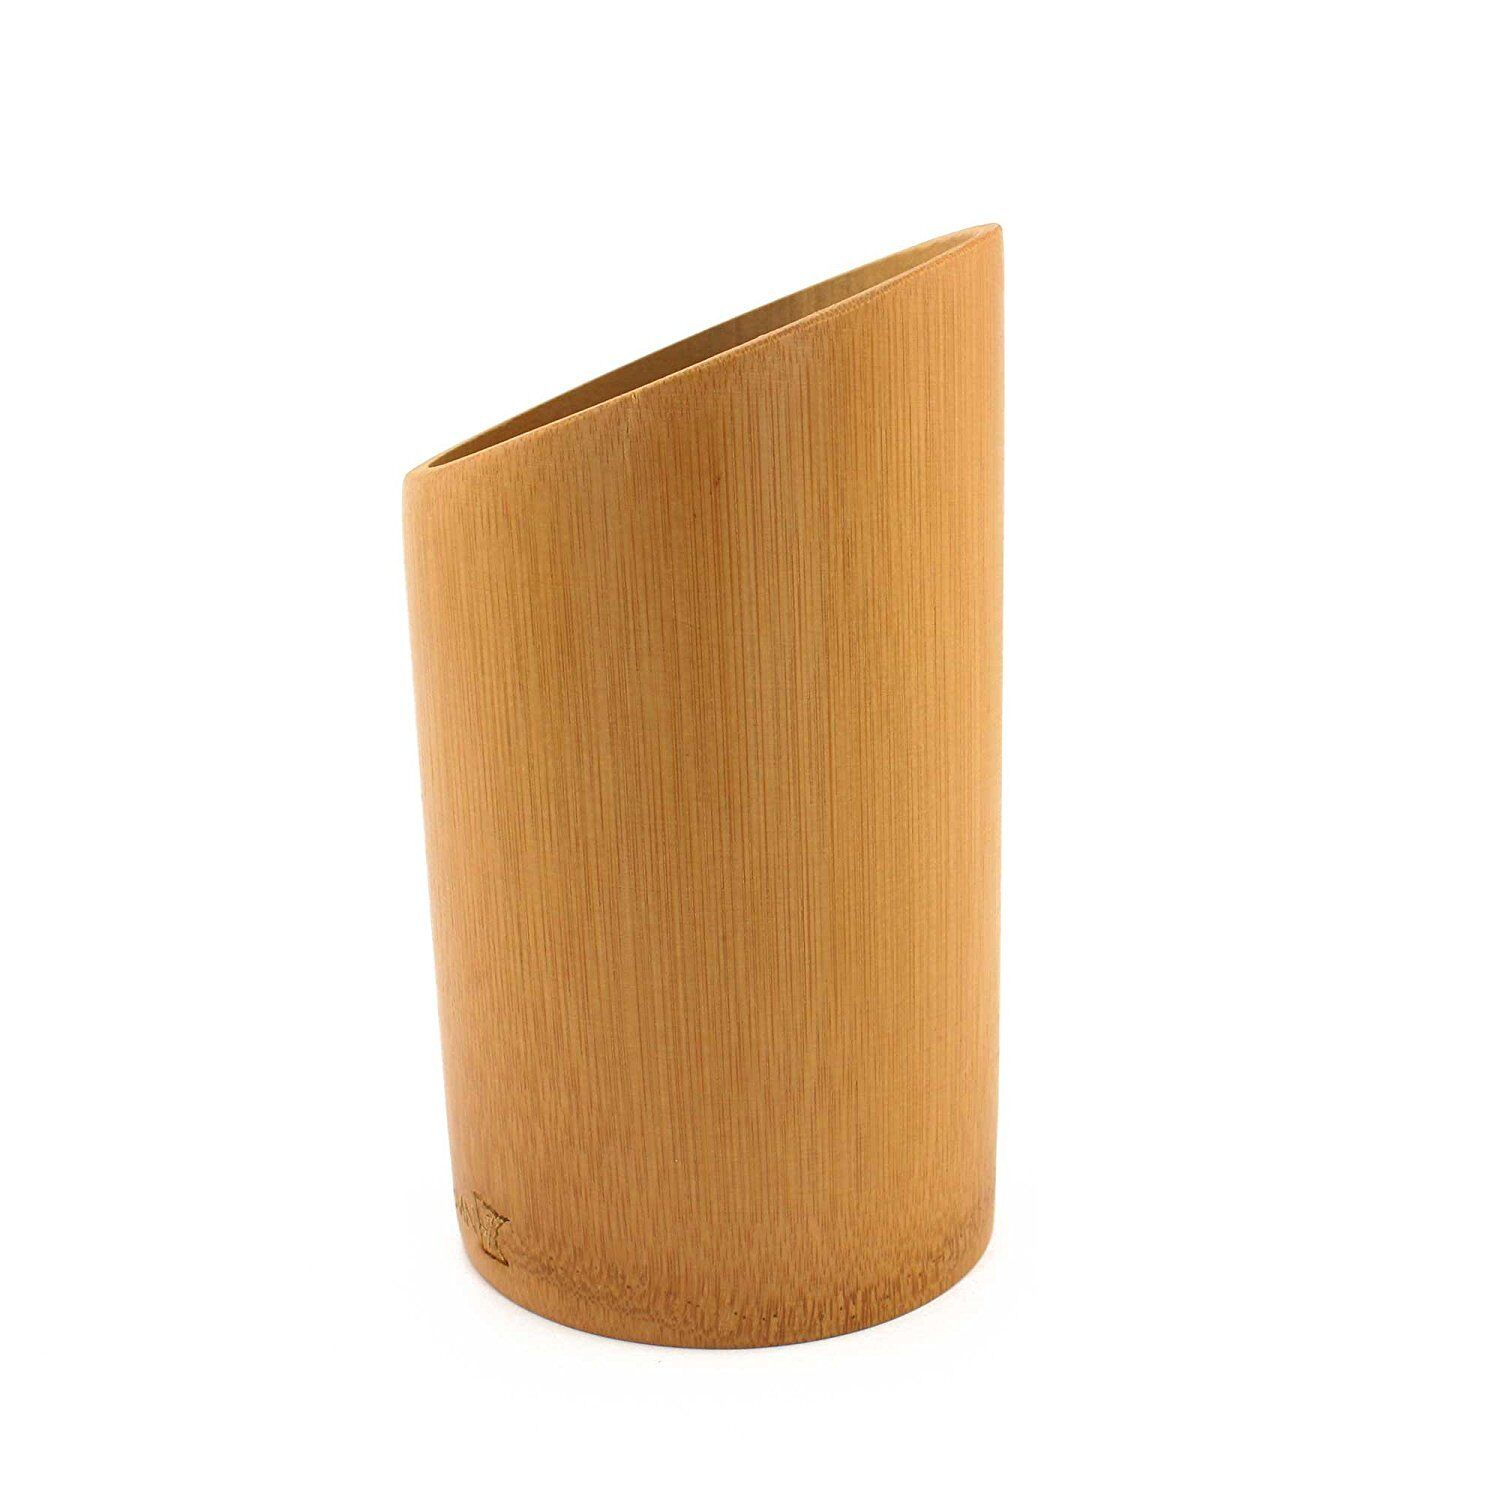 Perfect For Your Kitchen Designed To Hold Any And All Utensils Big Or Small Looks Great With Bamboo Wood Utencils